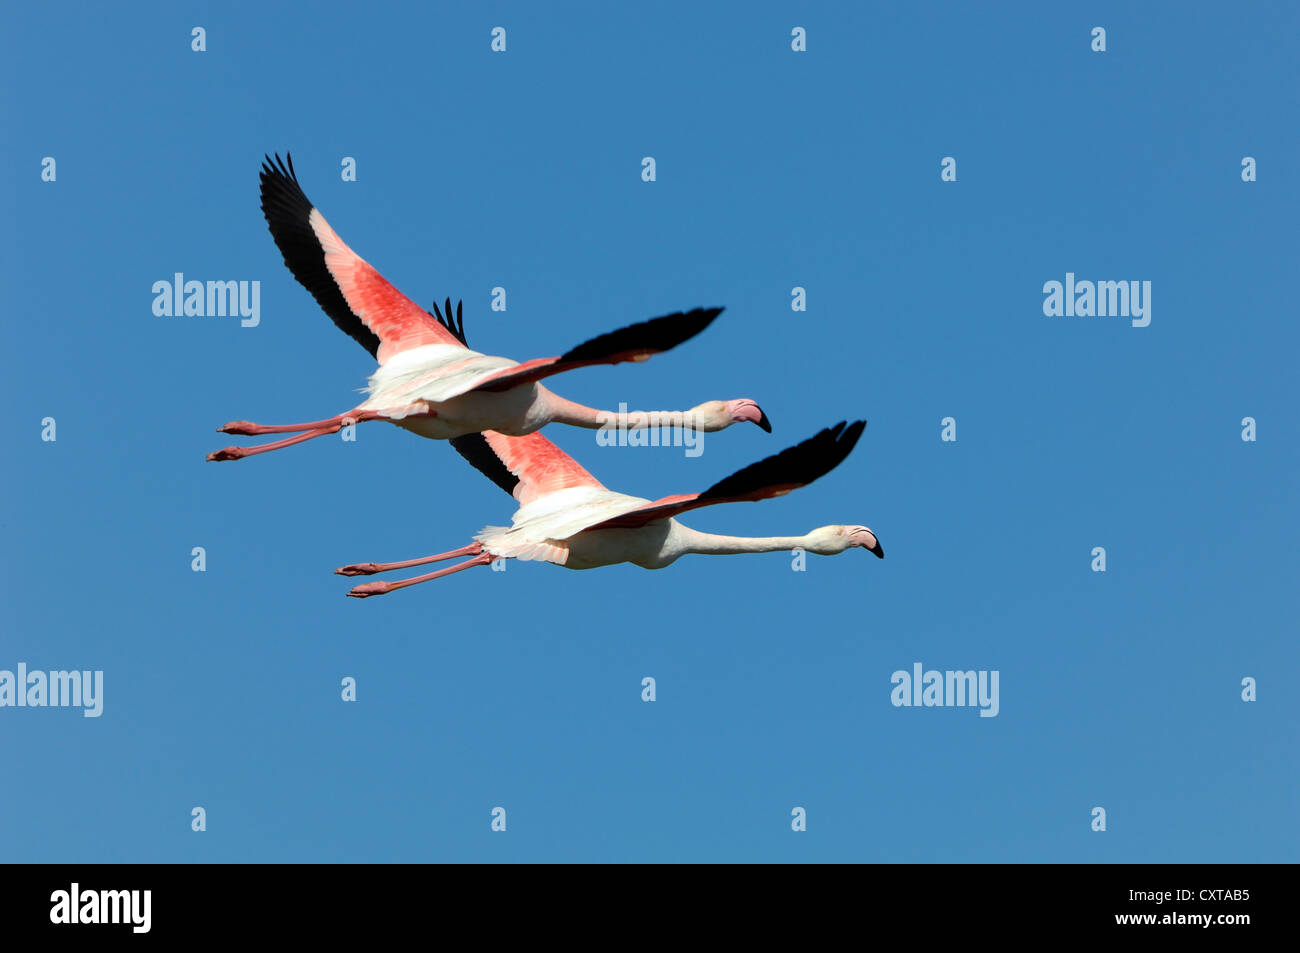 Pair of Greater Flamingos, Phoenicopterus ruber, Flying Overhead Camargue Provence France - Stock Image